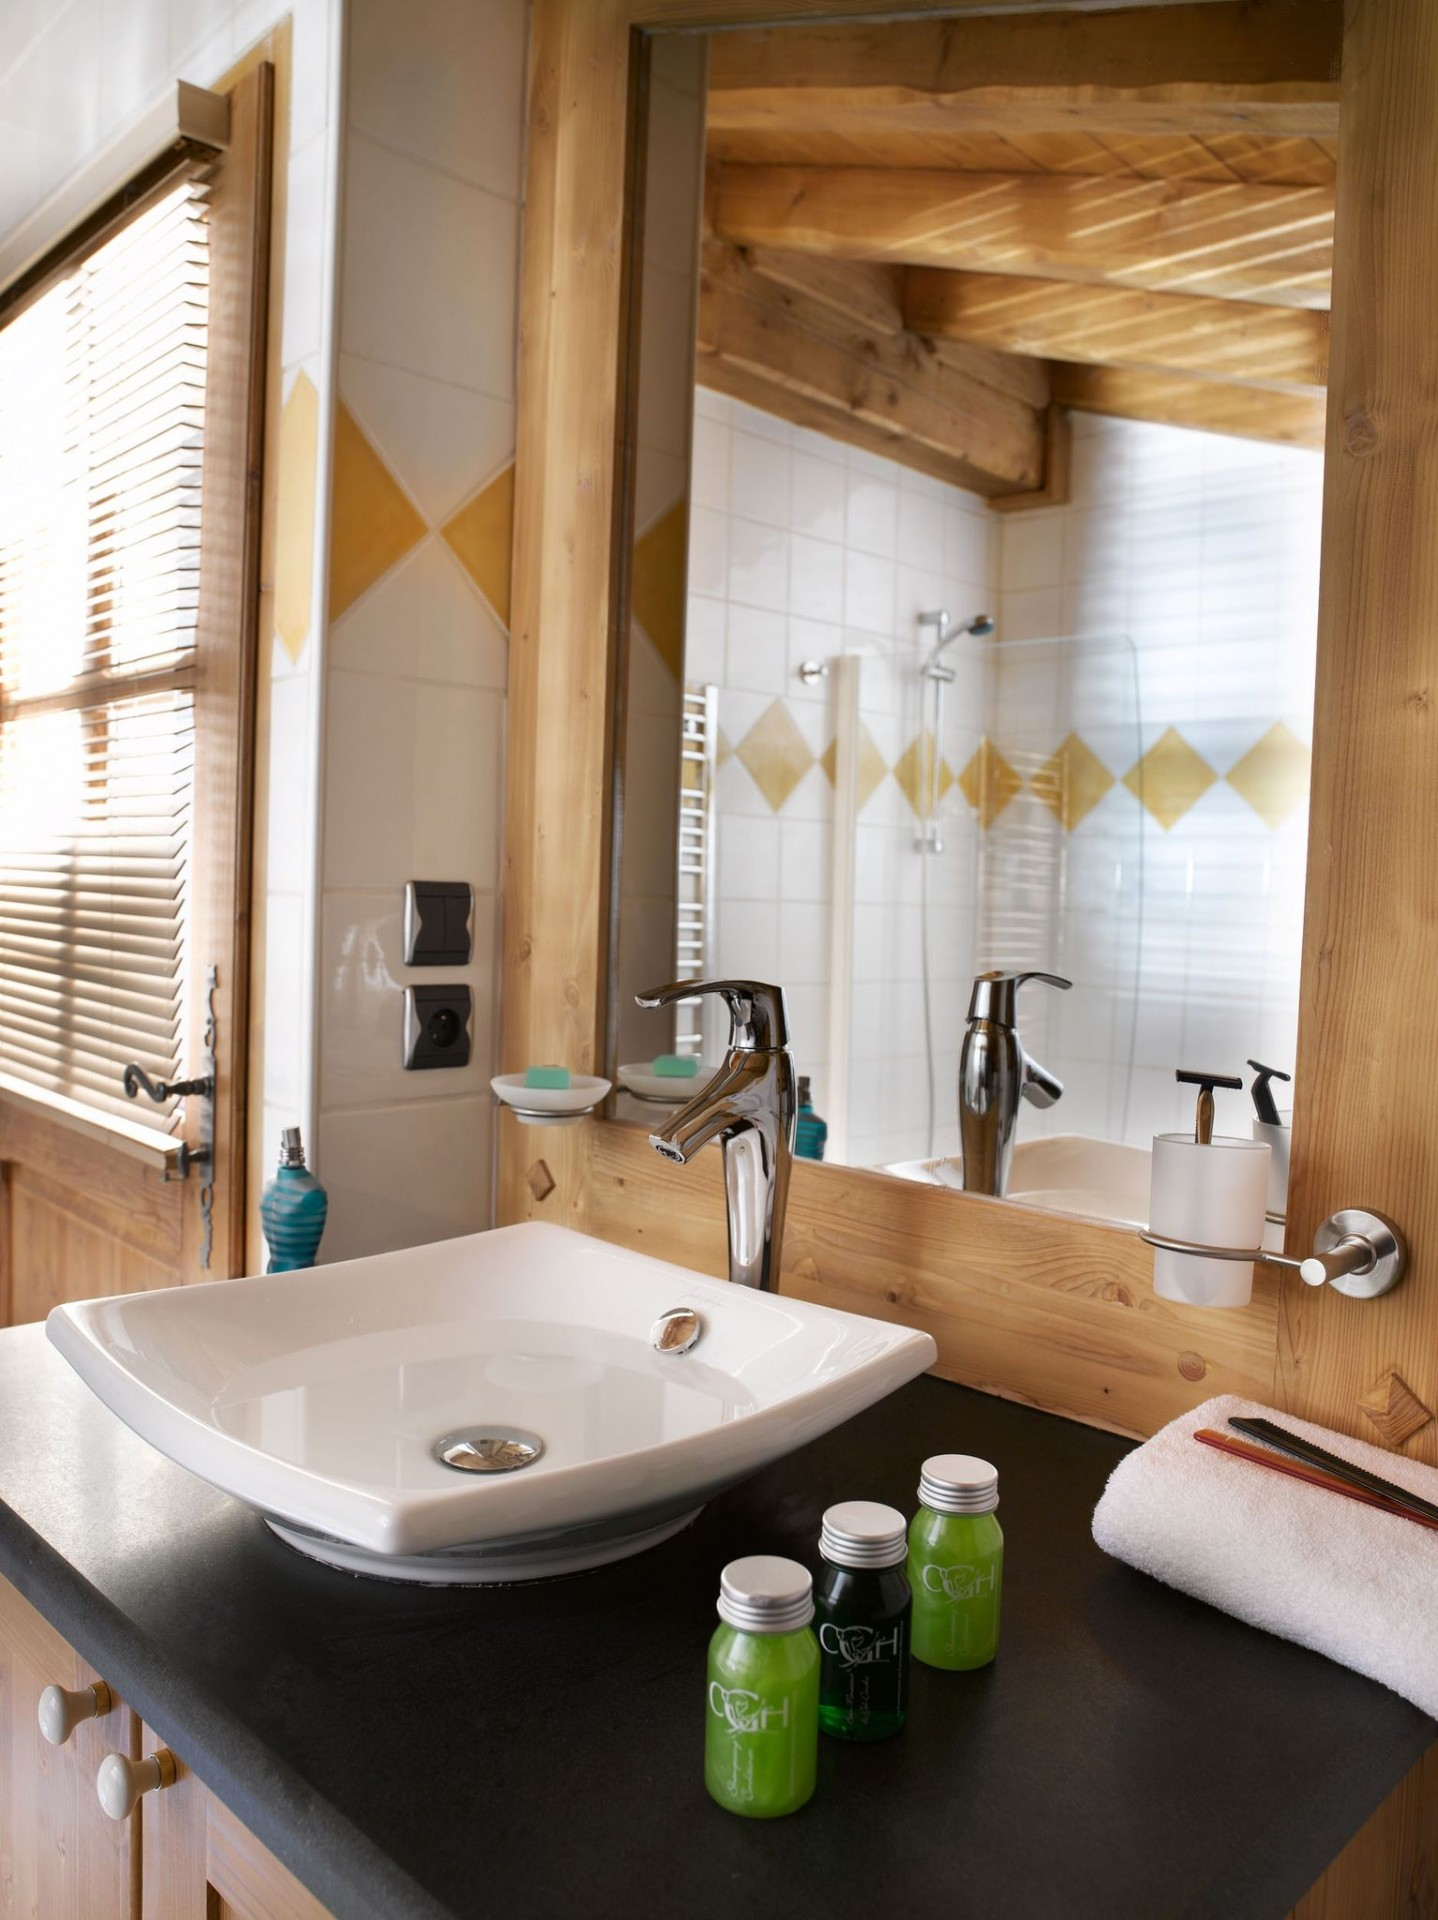 Les Houches Location Appartement Luxe Jacinthe Lavabo